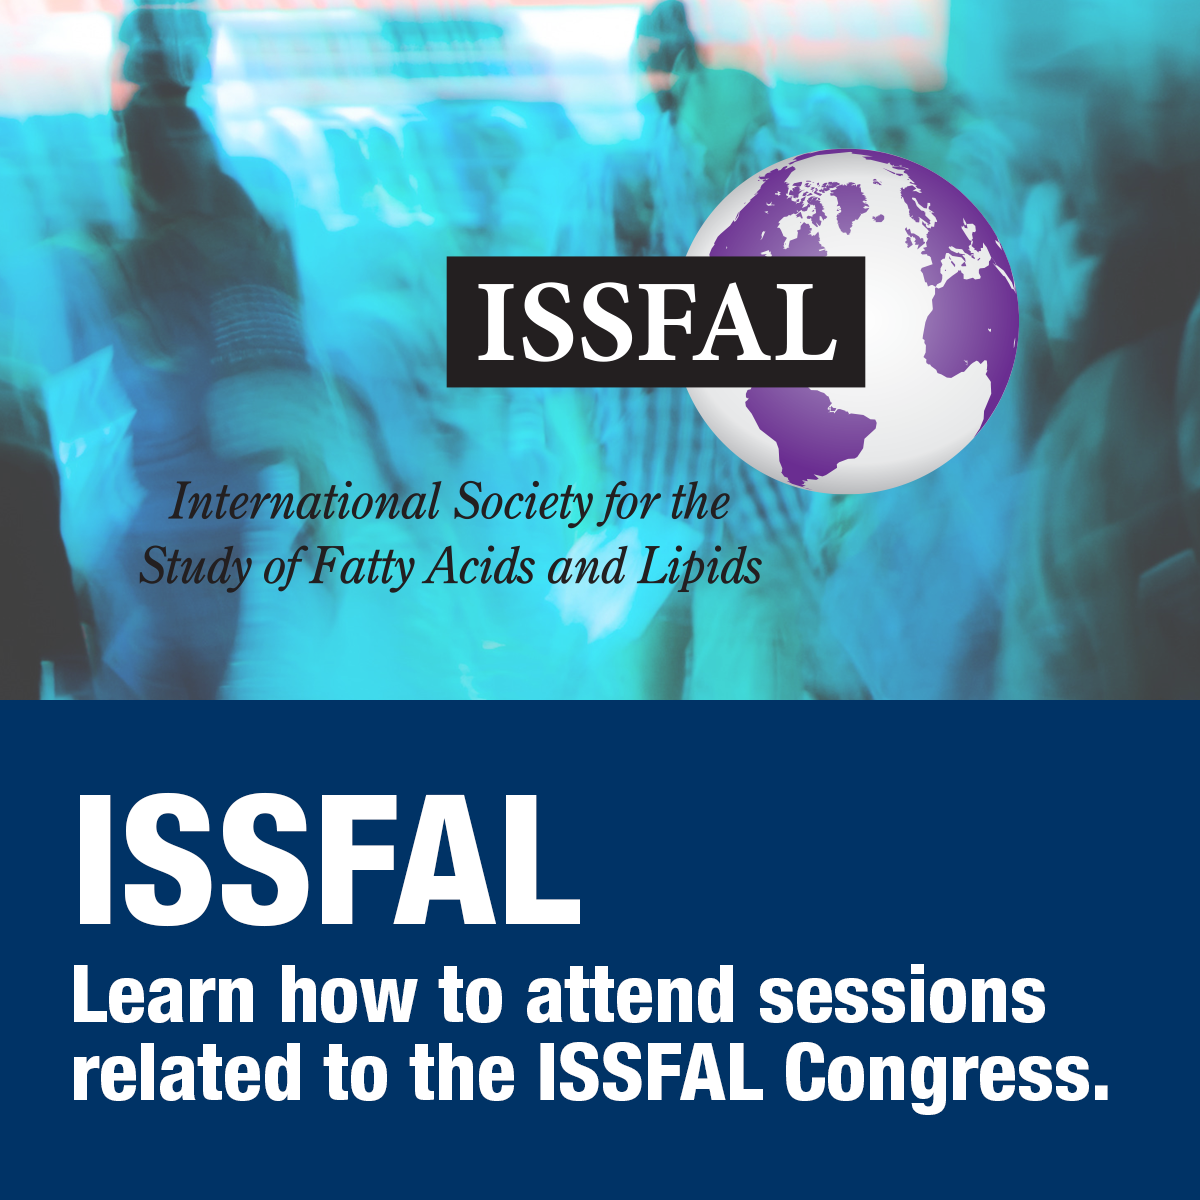 Learn how to view ISSFAL Congress sessions